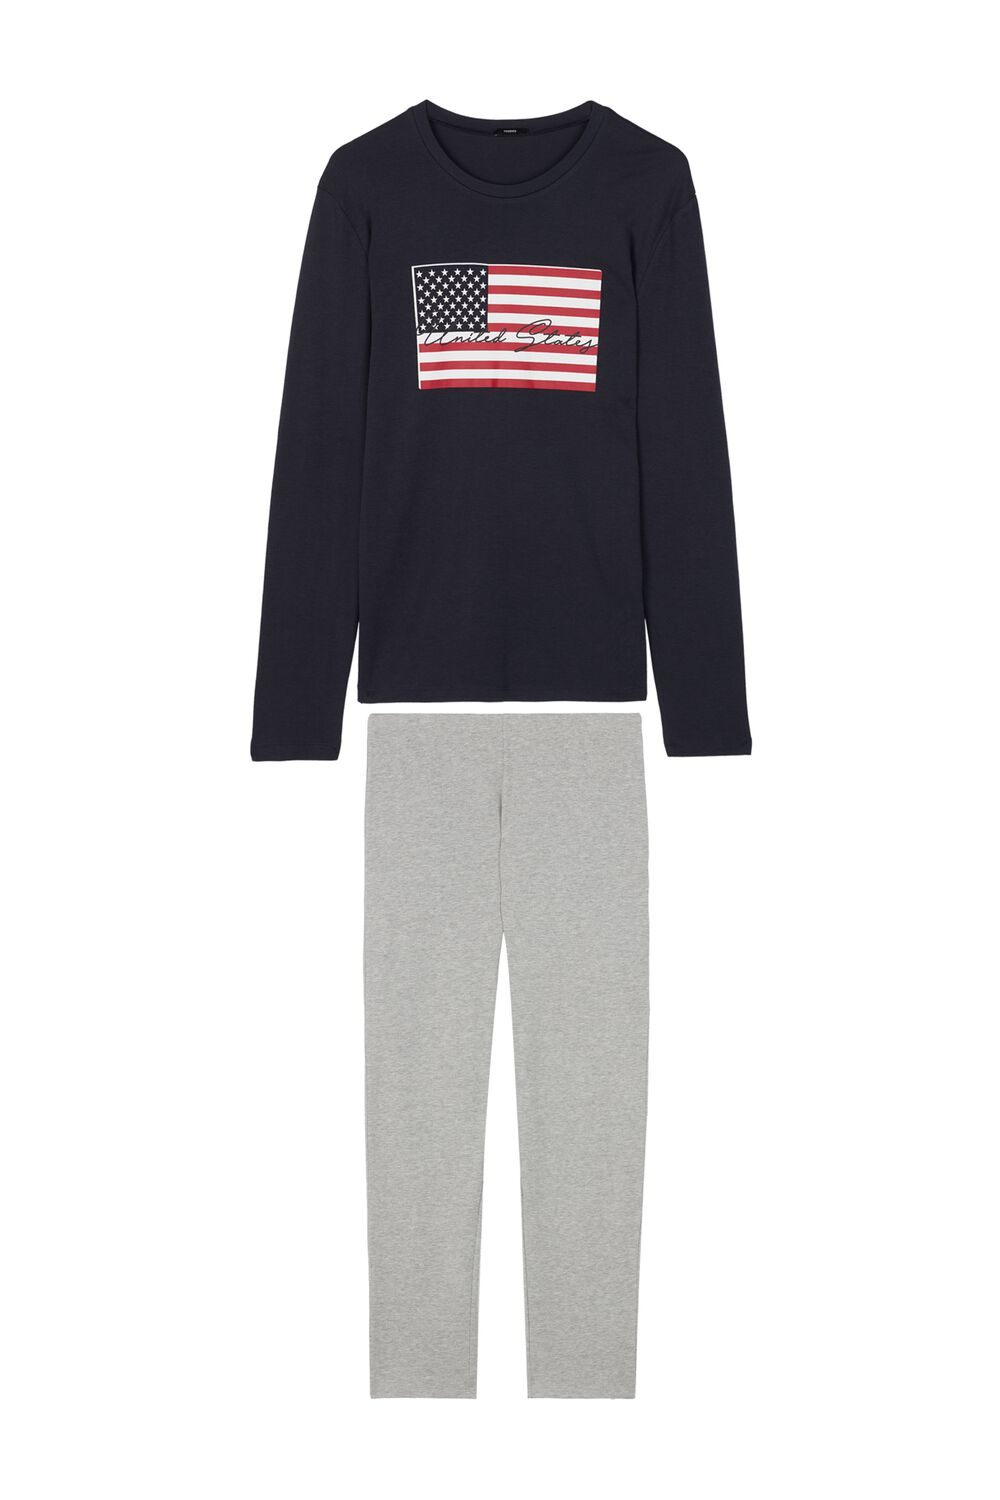 Men's Long USA Pyjama